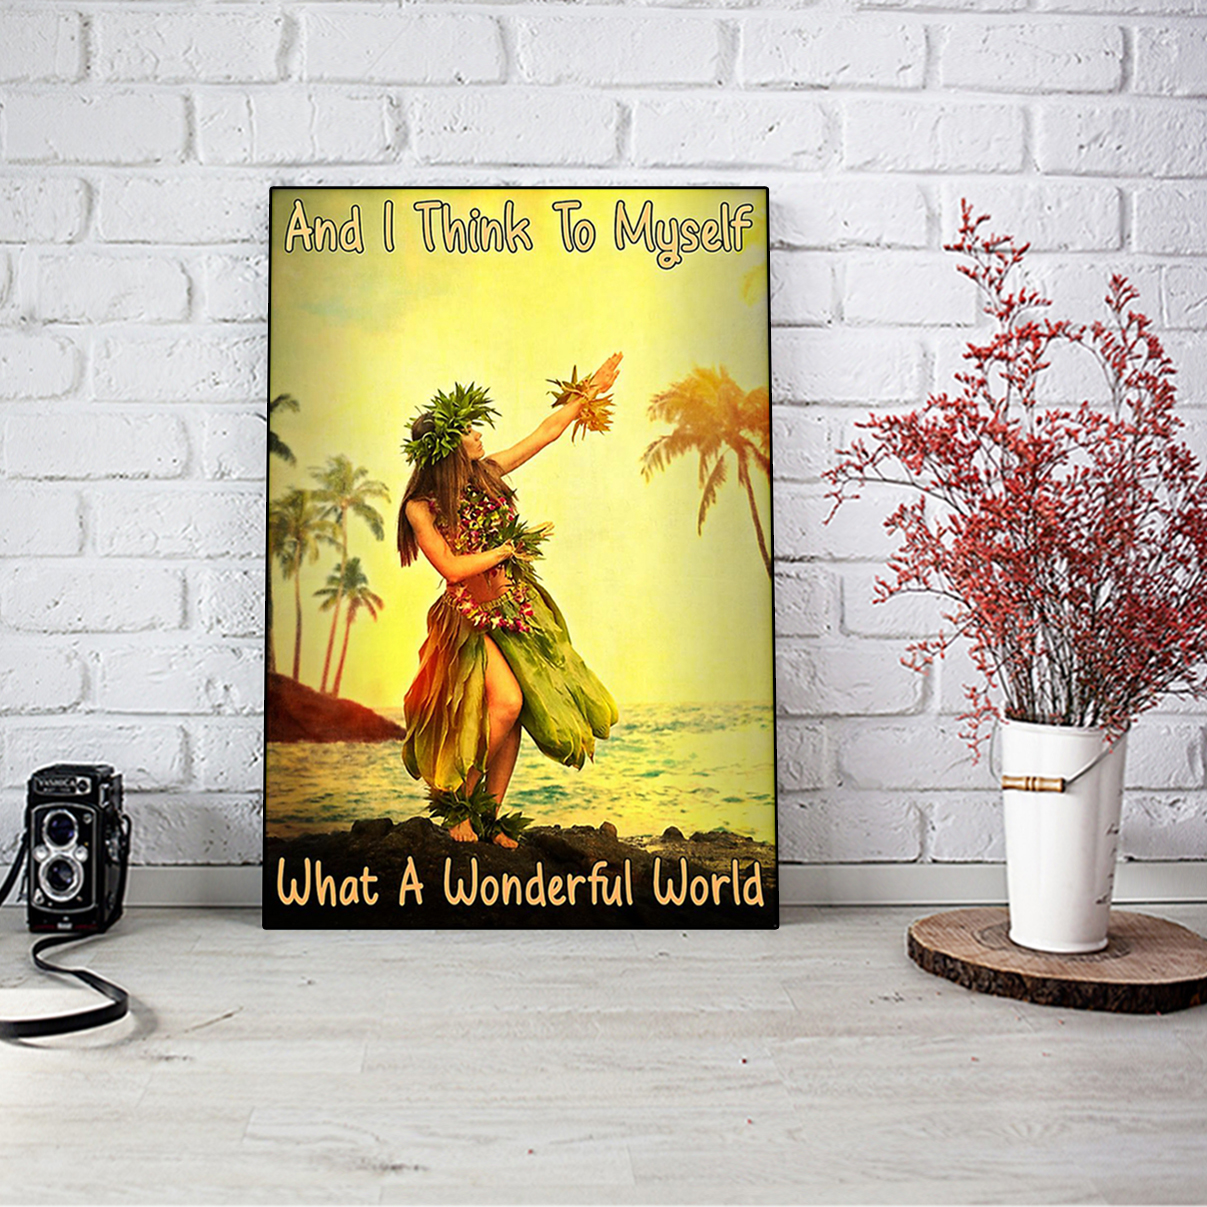 Hawaii girl and I think to myself what a wonderful world poster A1